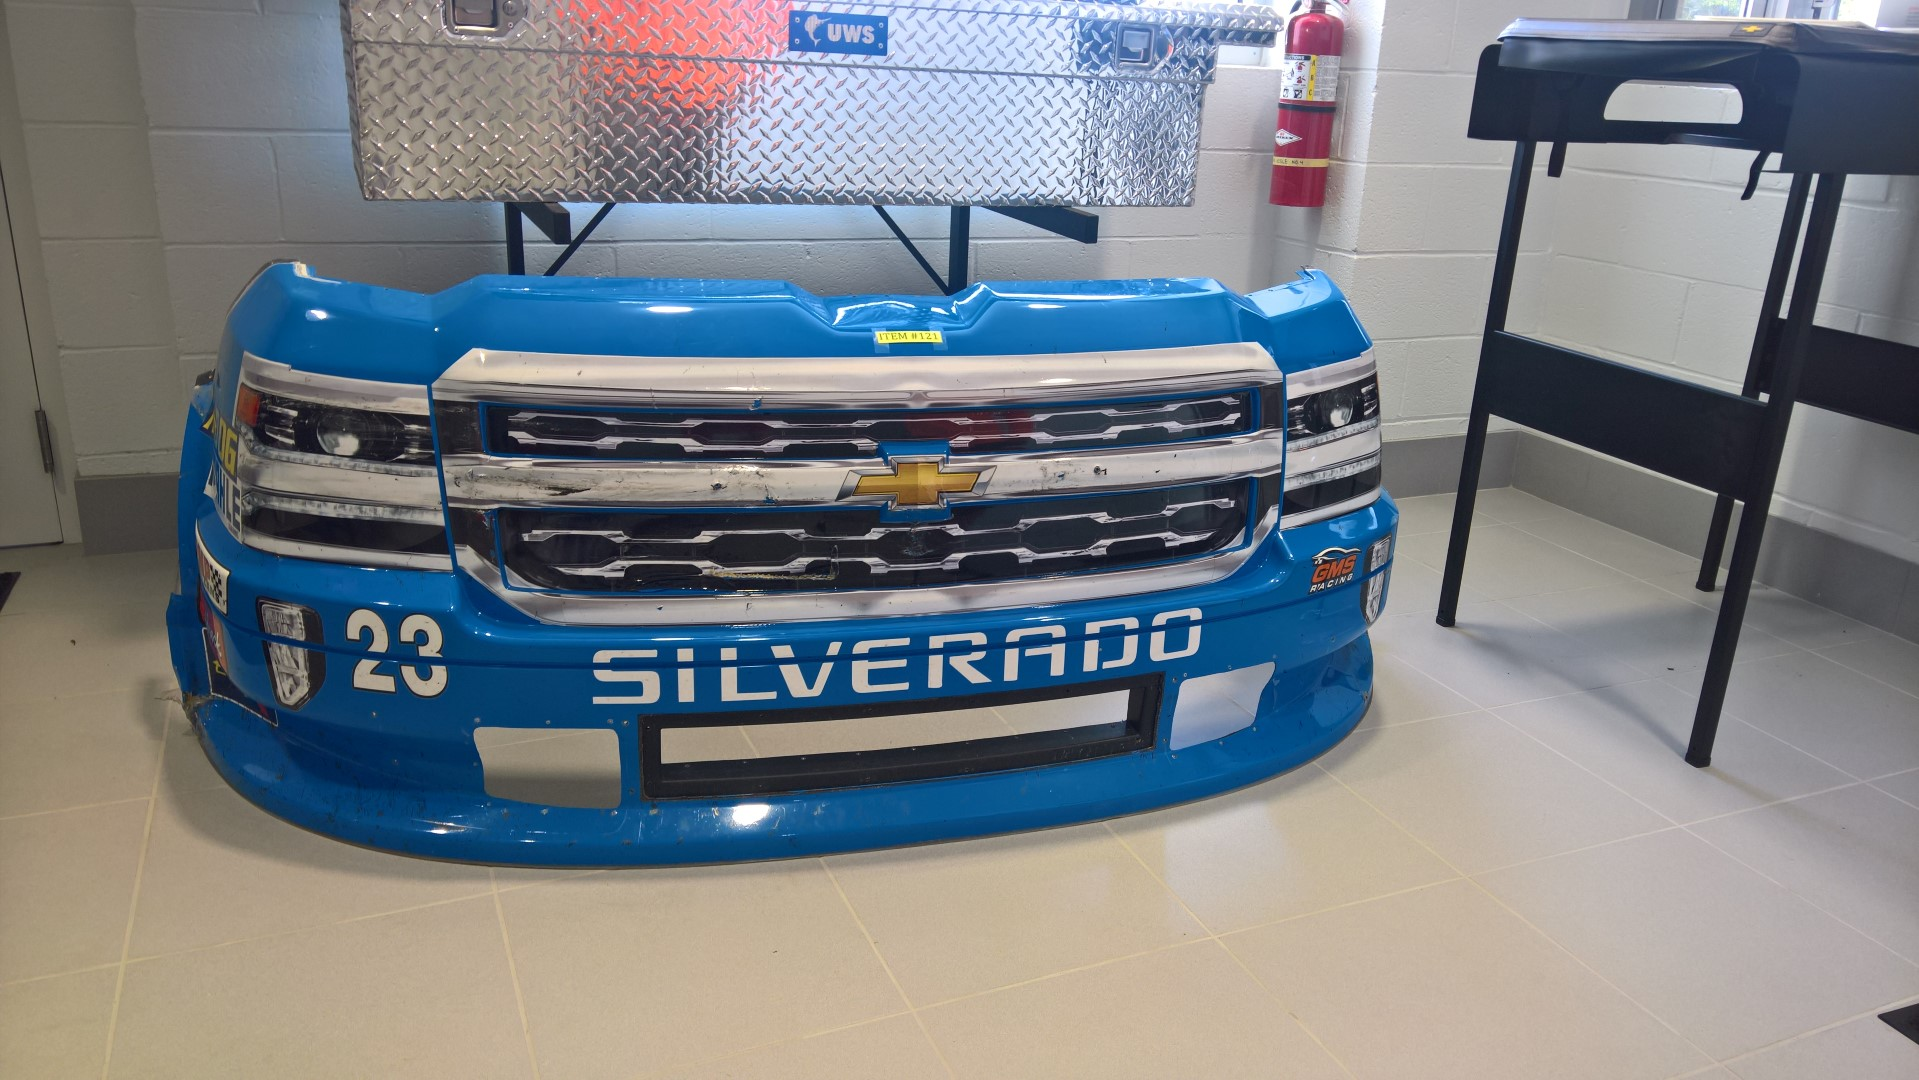 Sheet metal from Race Winning #23 Allegiant Airlines driven by Chase Elliot